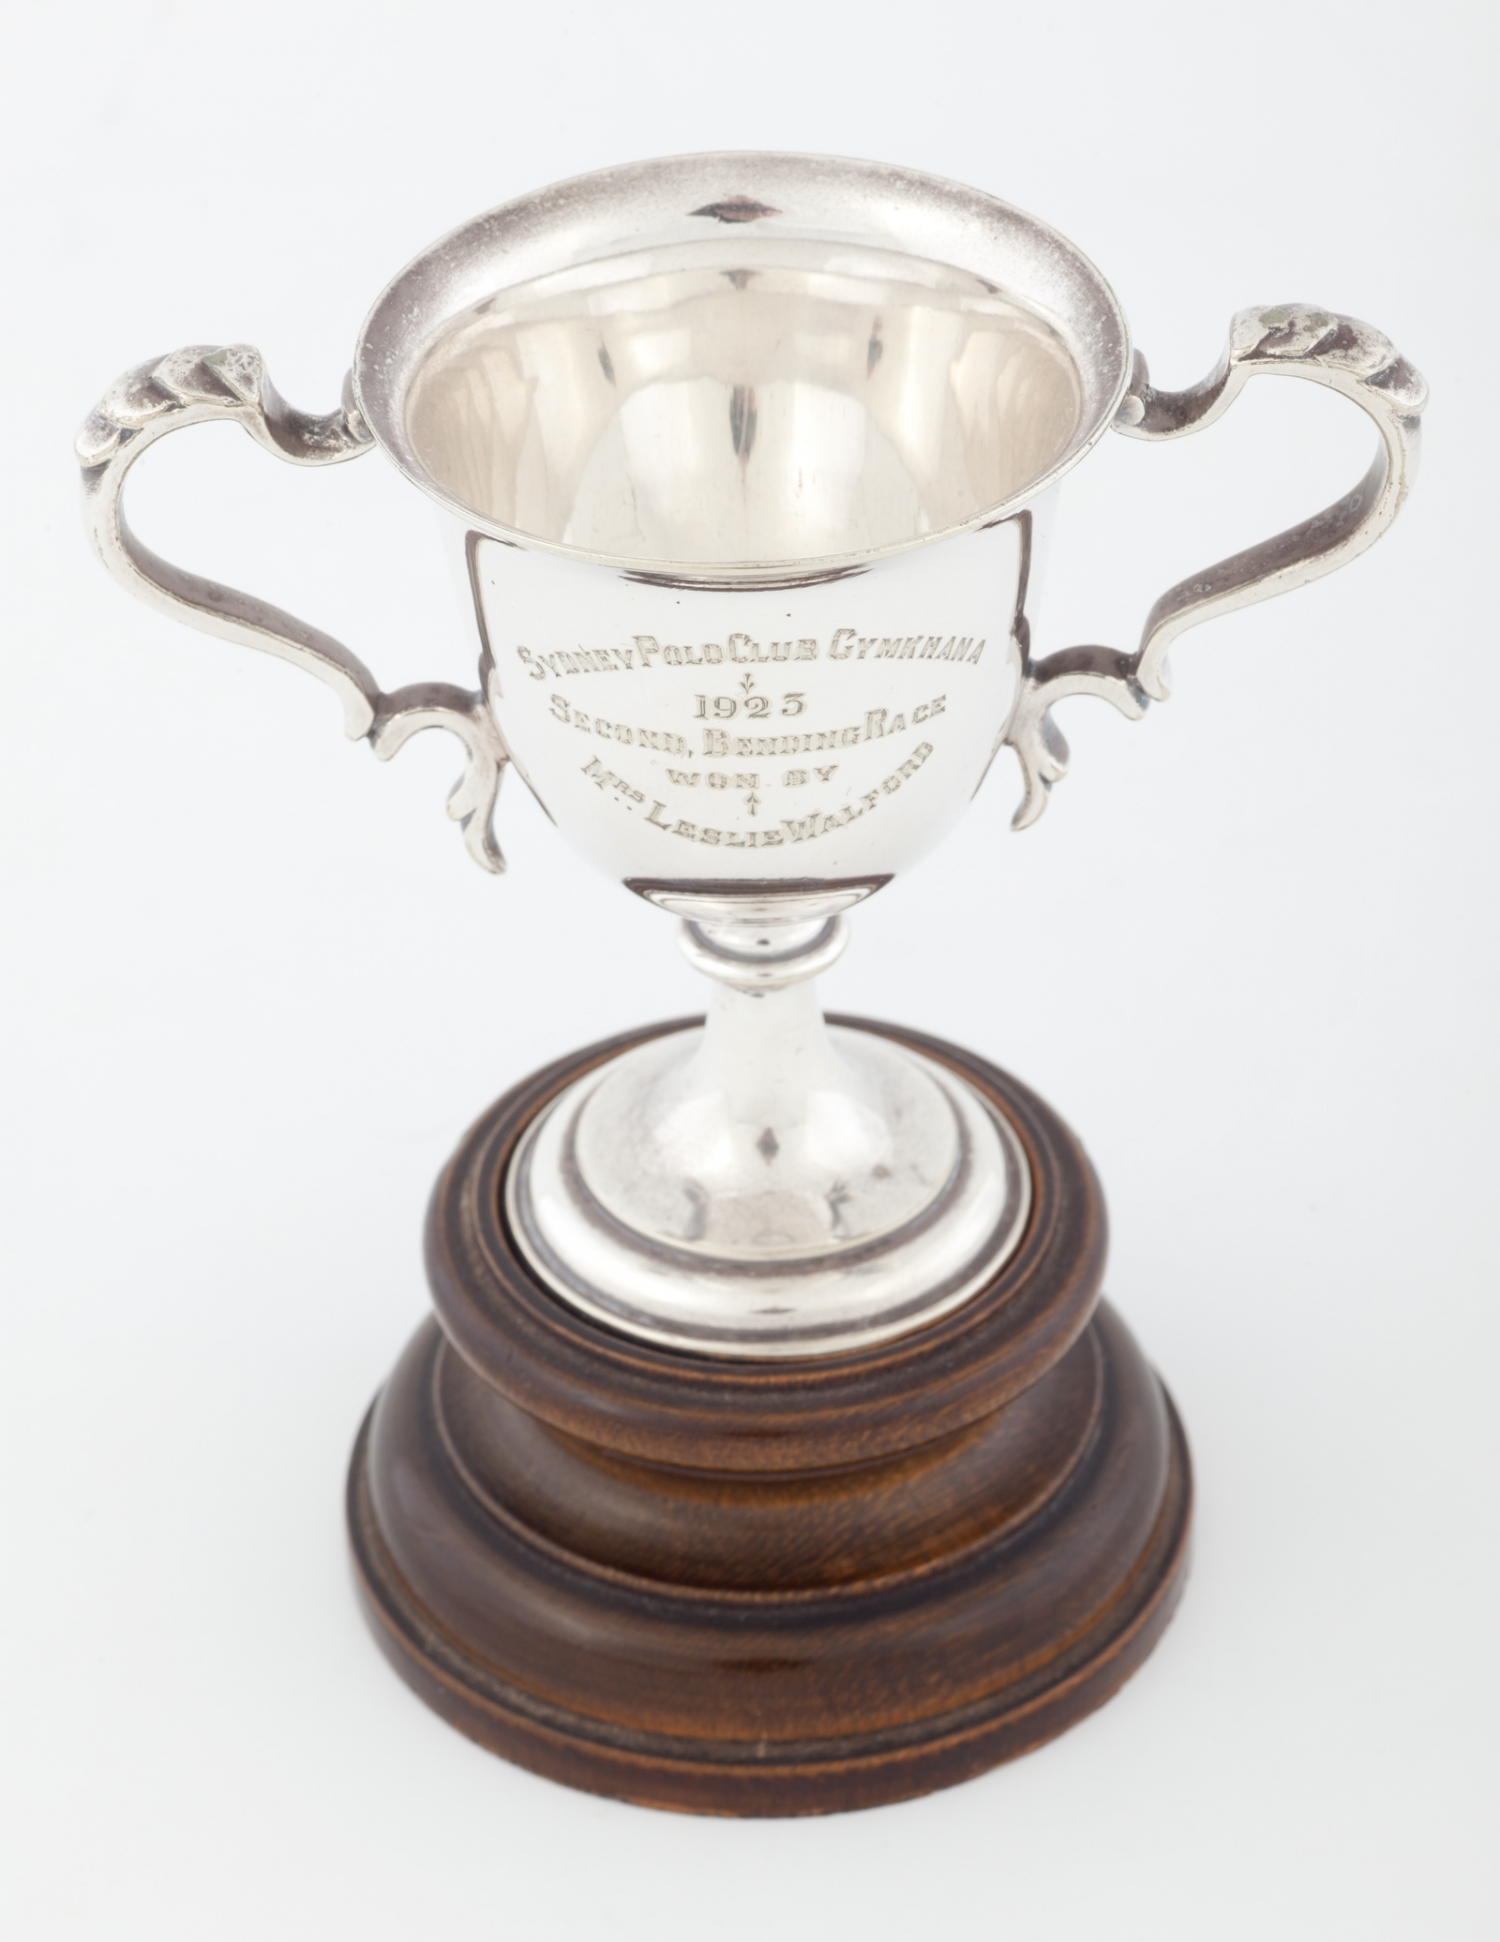 Trophy presented to Dora Walford for second prize in the Ladies Bending Race, Sydney Polo Club Gymkhana, June 1923